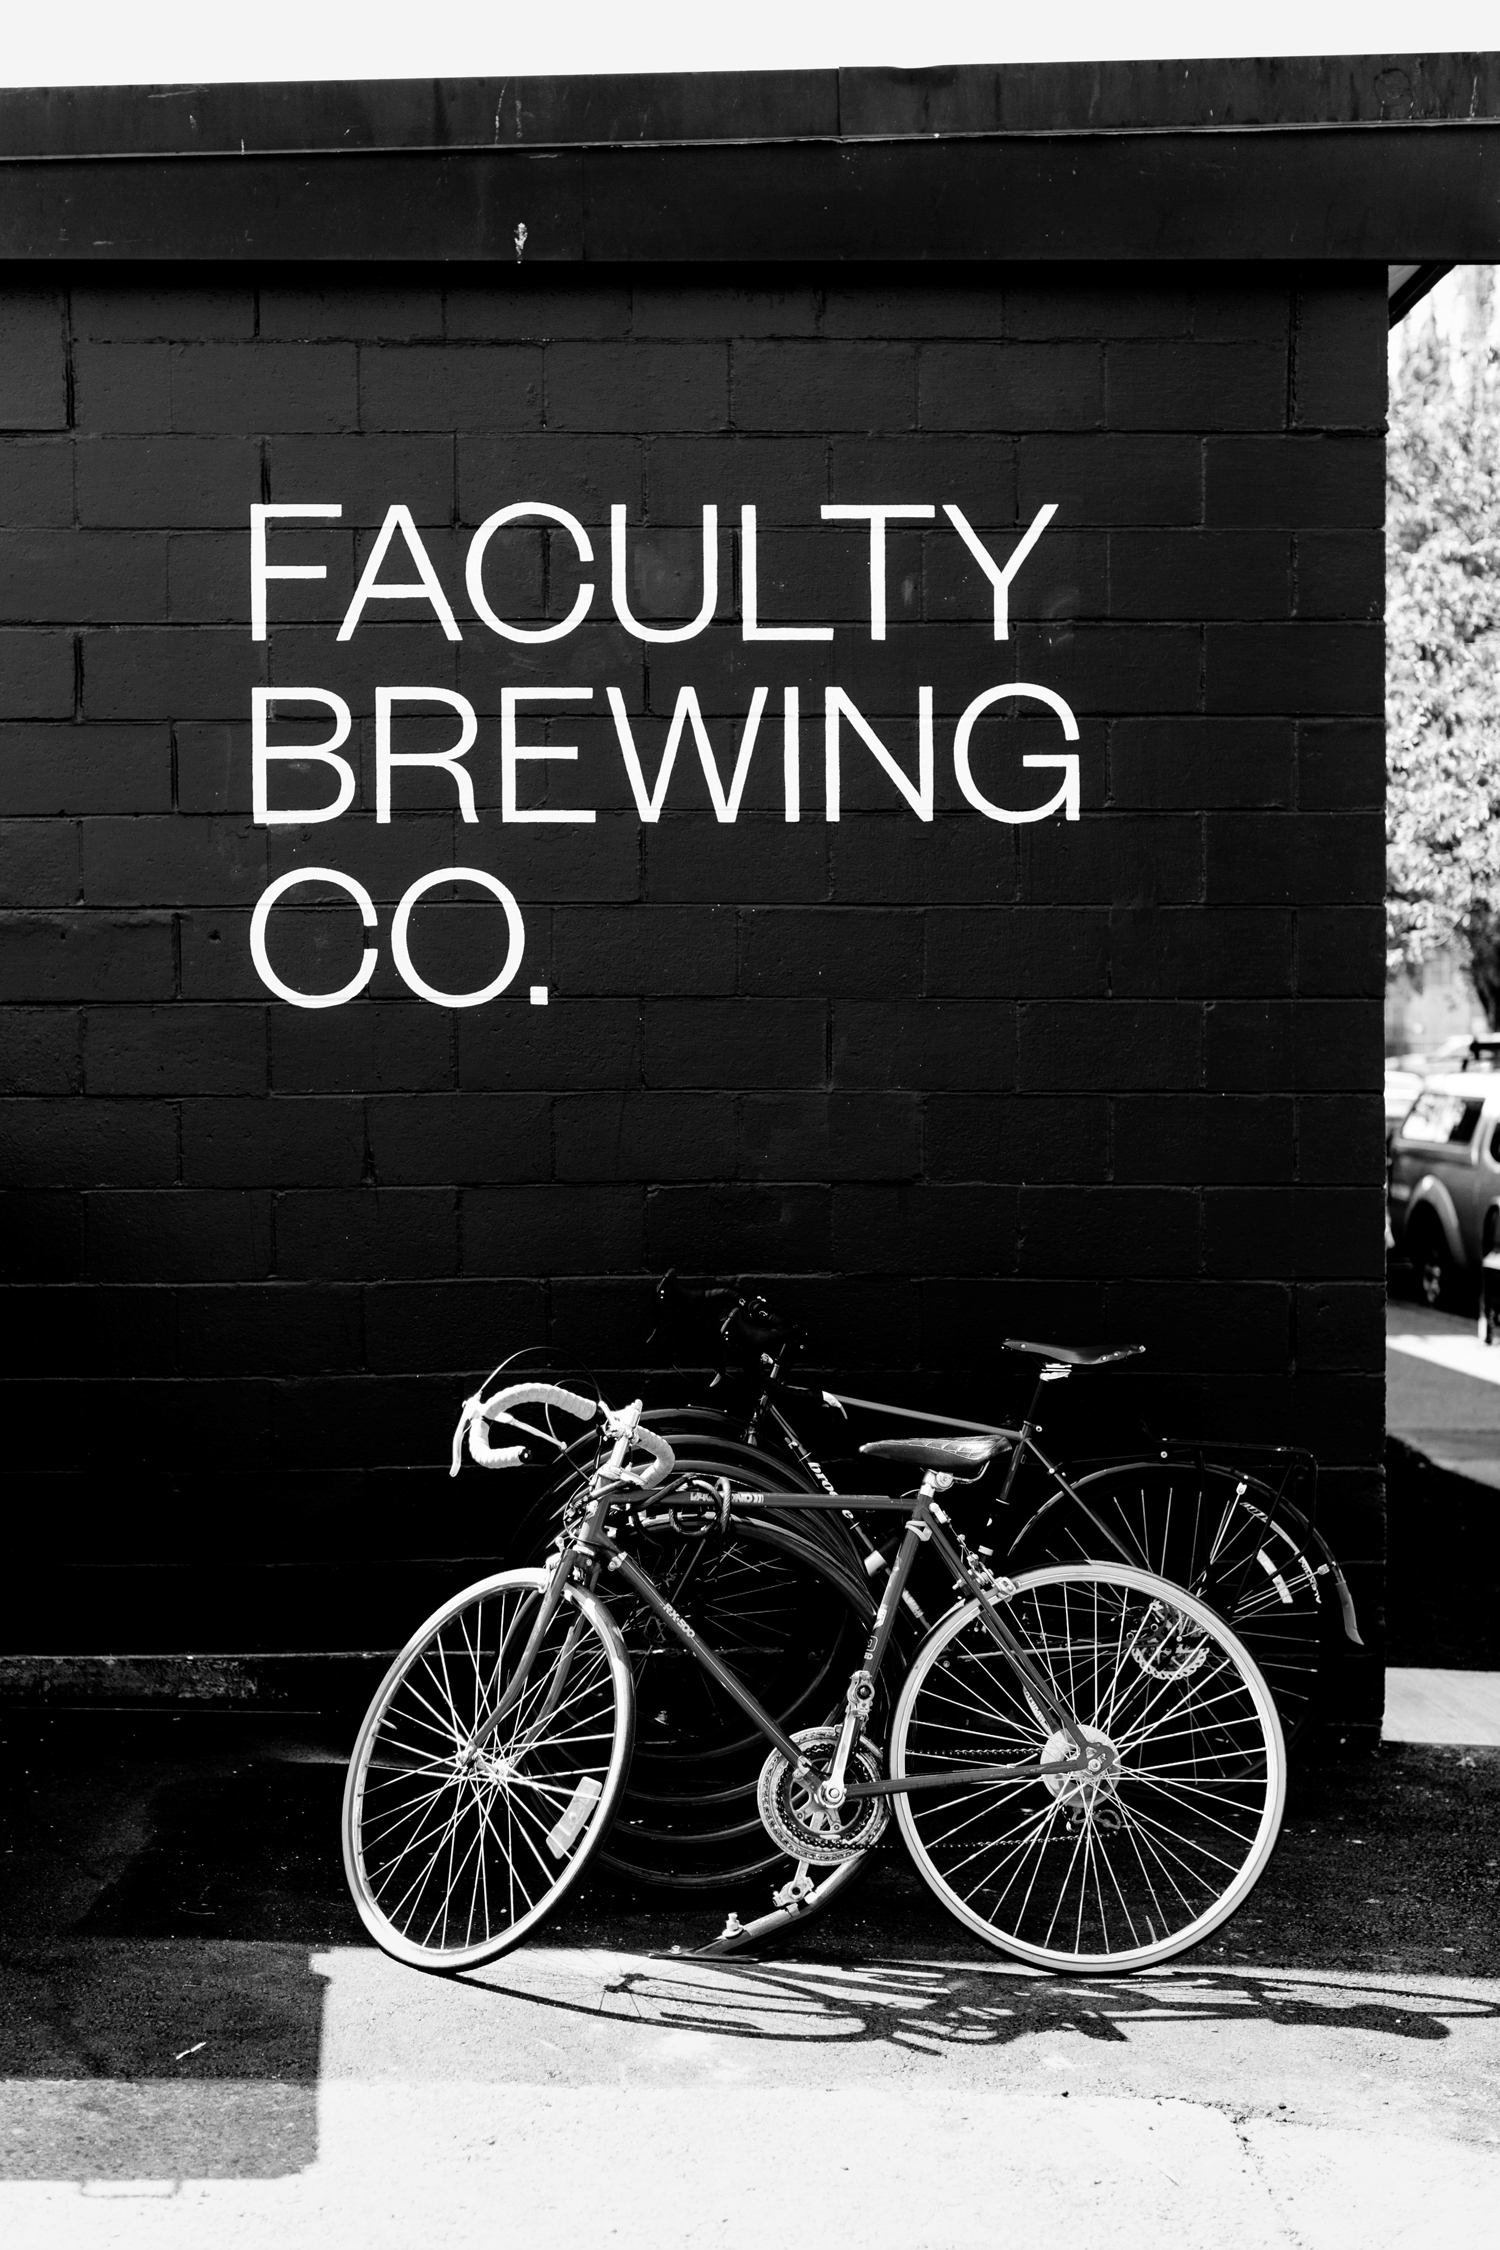 Logotype, packaging and signage by Canadian graphic design studio Post Projects for Faculty Brewing Co.